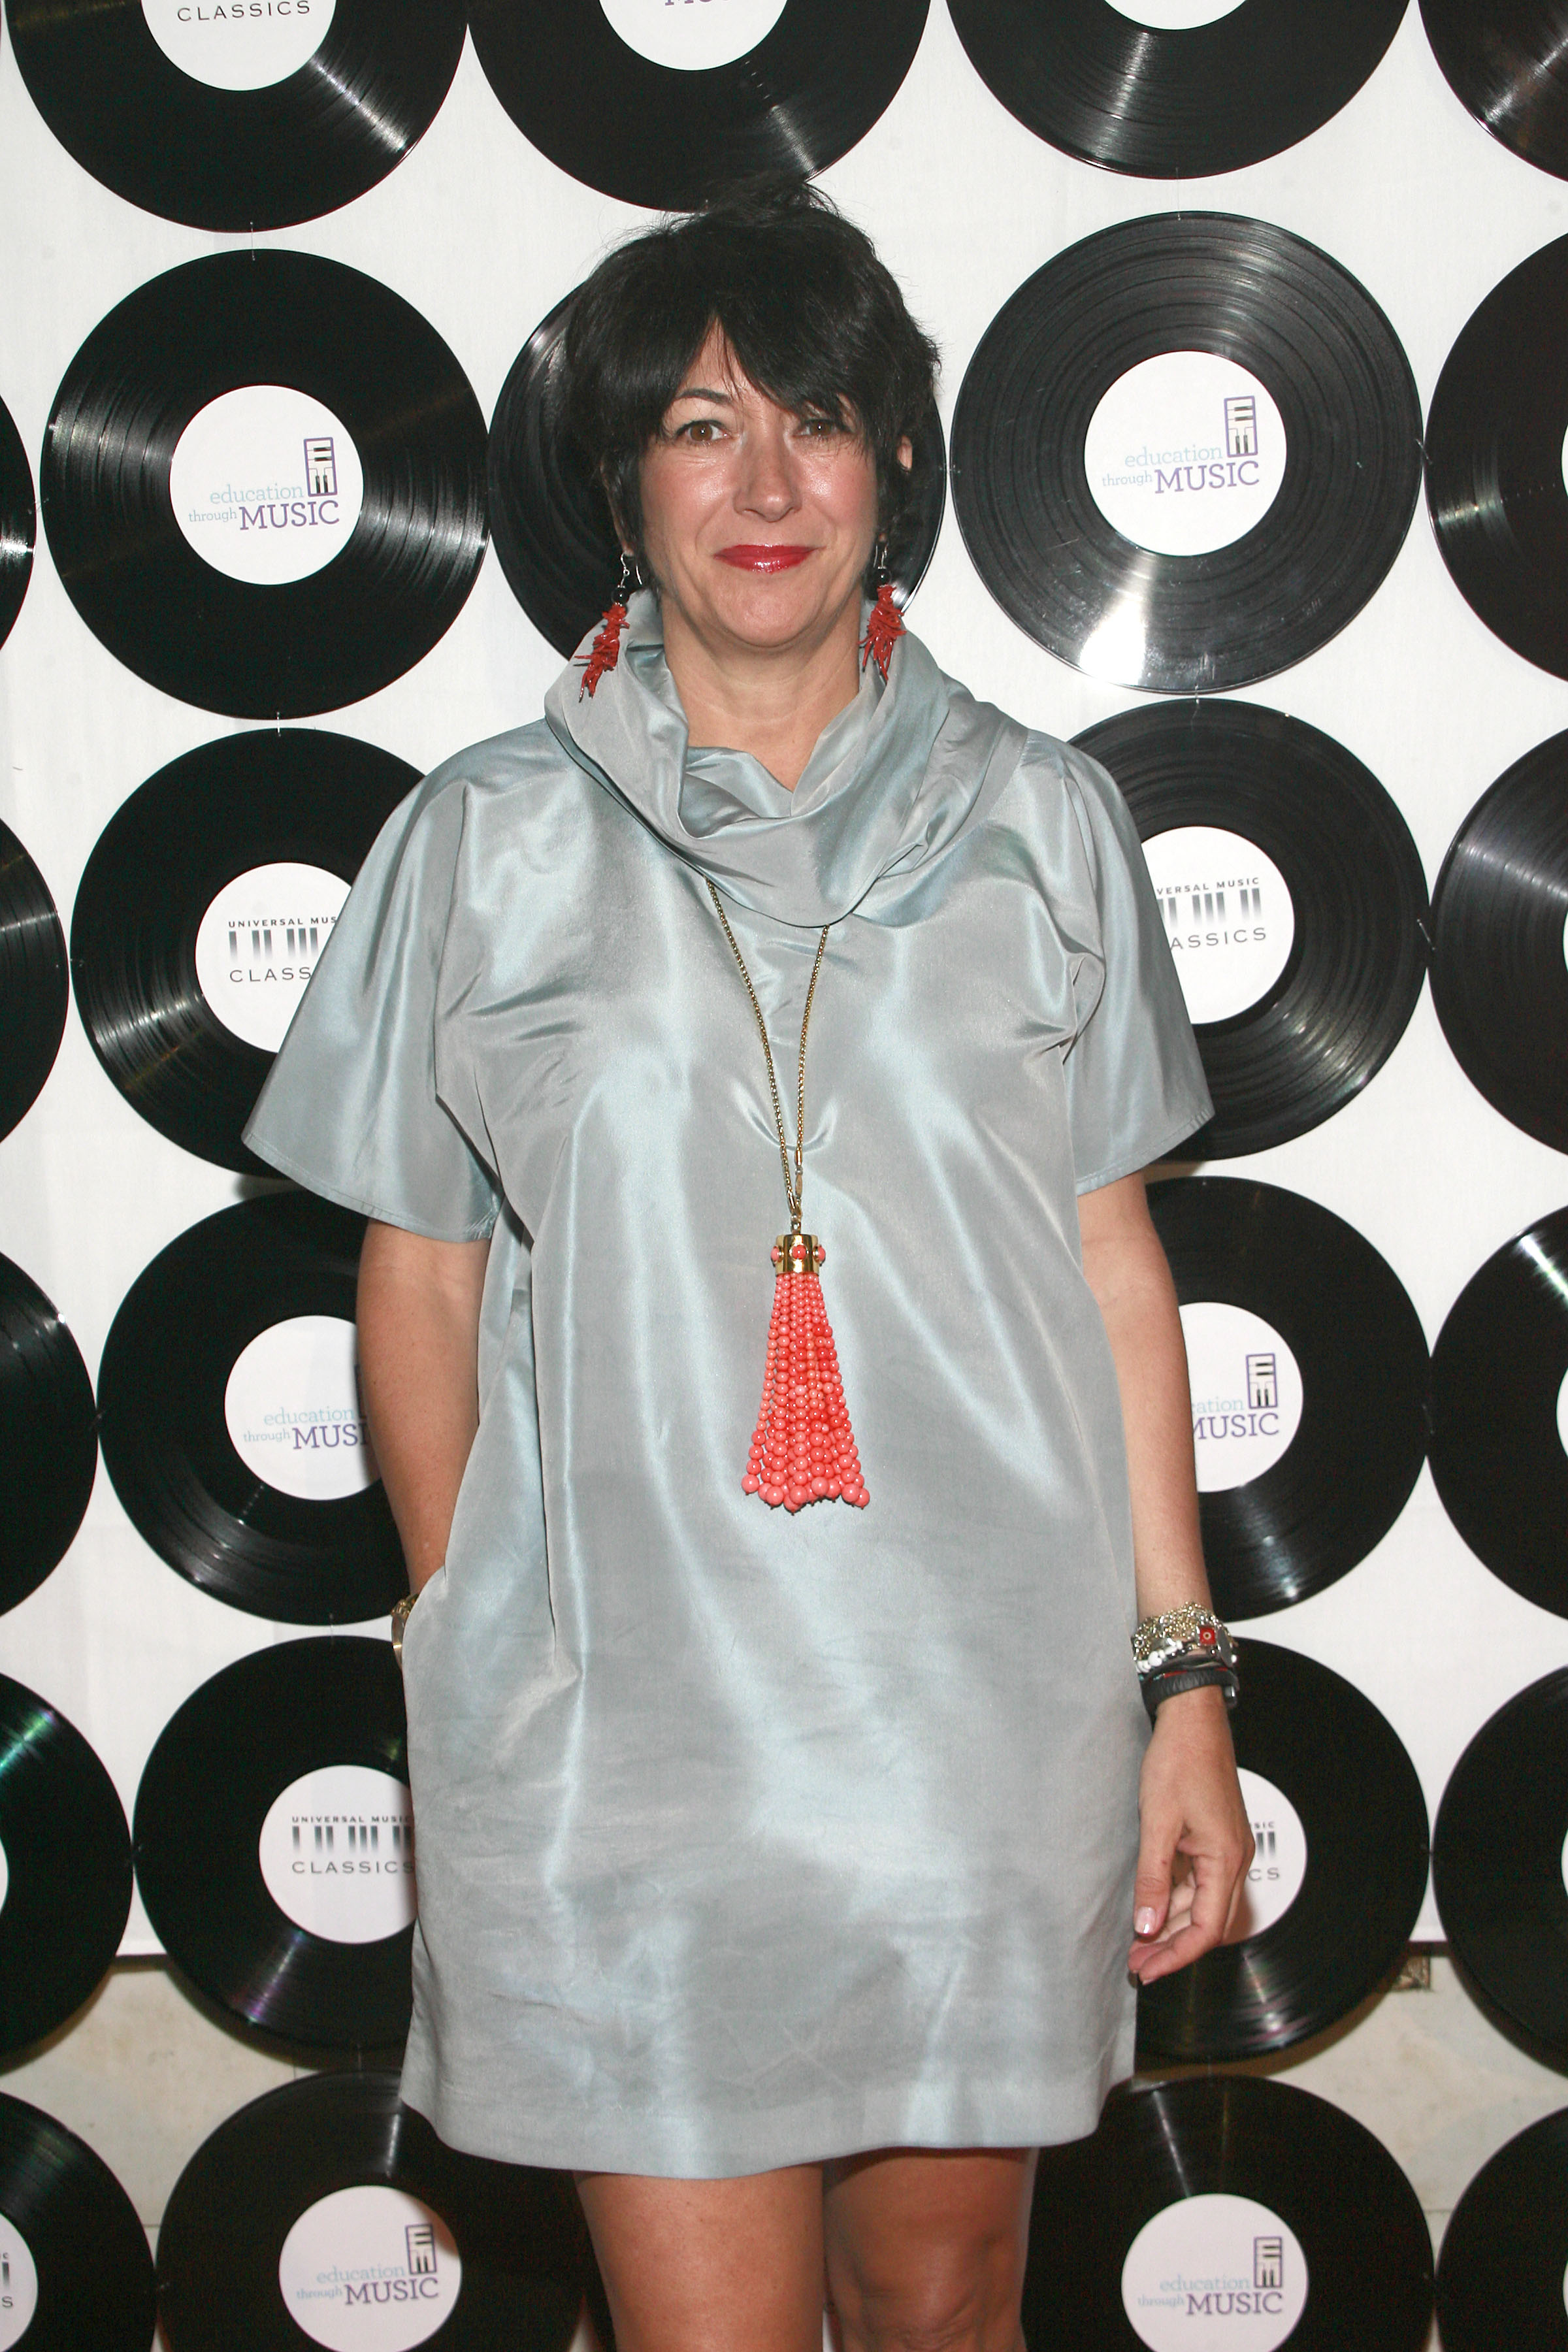 NEW YORK, NY - MAY 6: Ghislaine Maxwell attends EDUCATION THROUGH MUSIC Annual Children's Benefit Gala at Capitale on May 6, 2014 in New York City. (Photo by Sylvain Gaboury/Patrick McMullan via Getty Images)